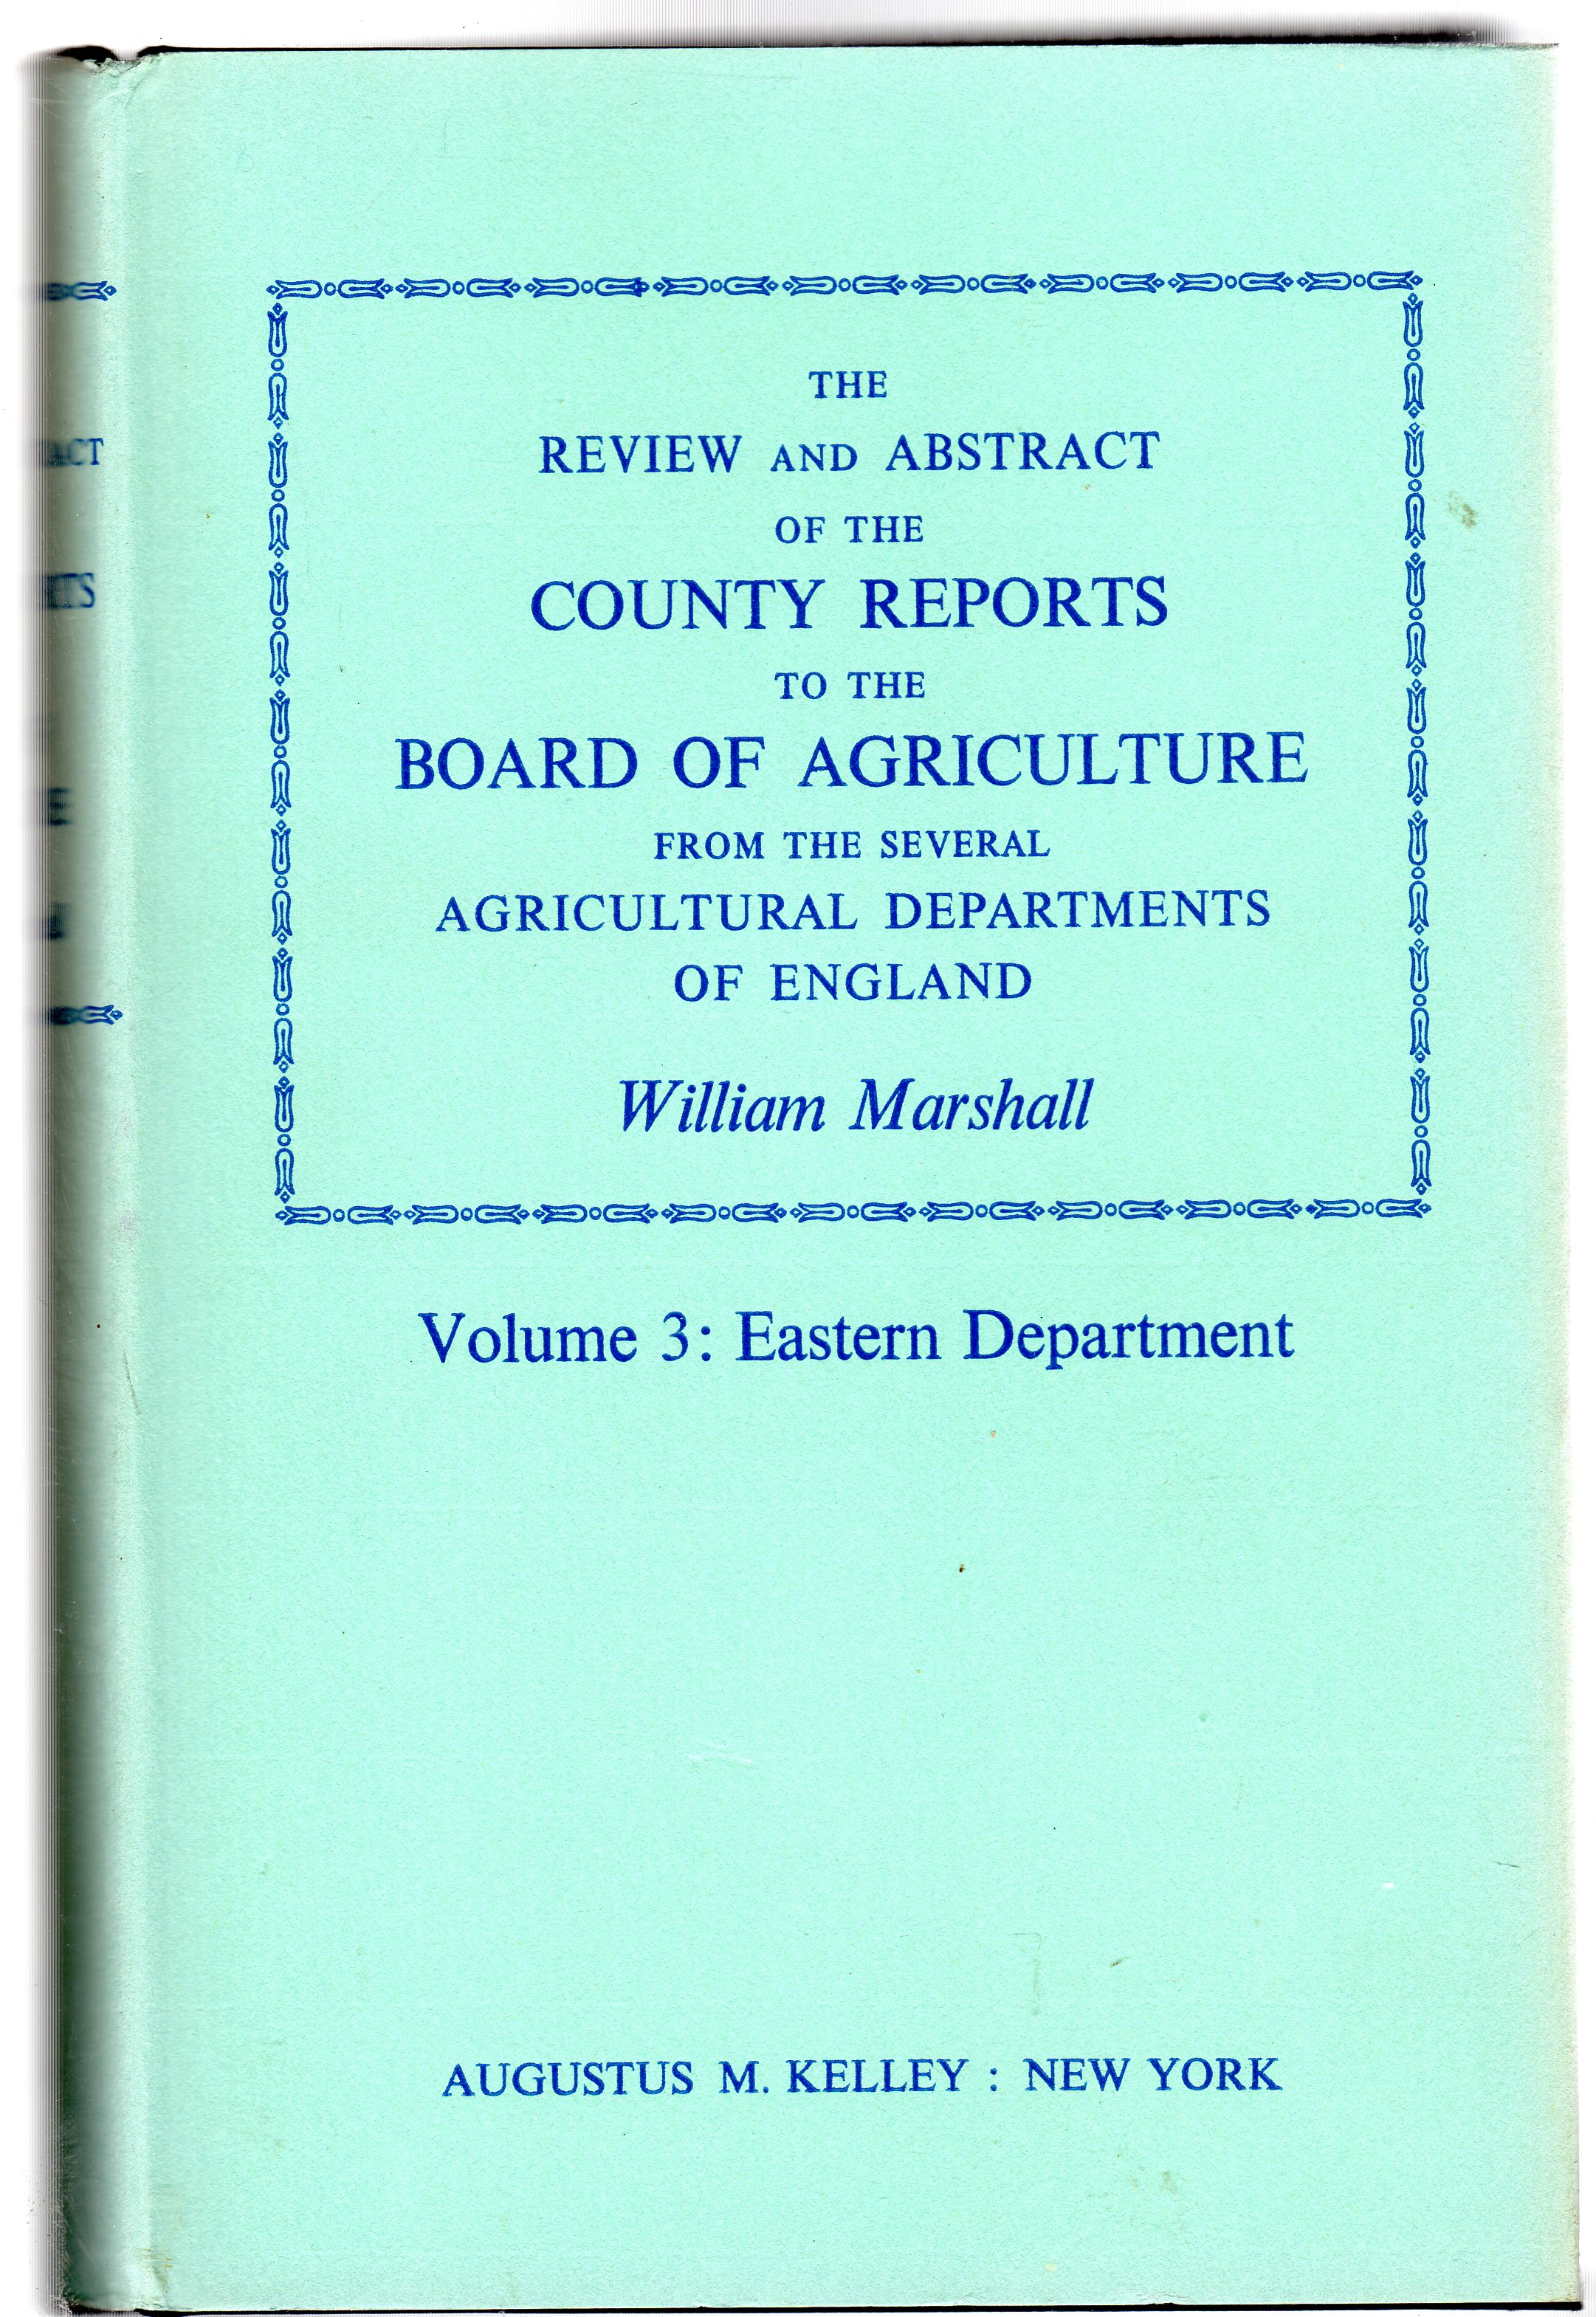 Image for The Review and Abstract of the County Reports to the Board of Agriculture : Volume  3 - Eastern Department